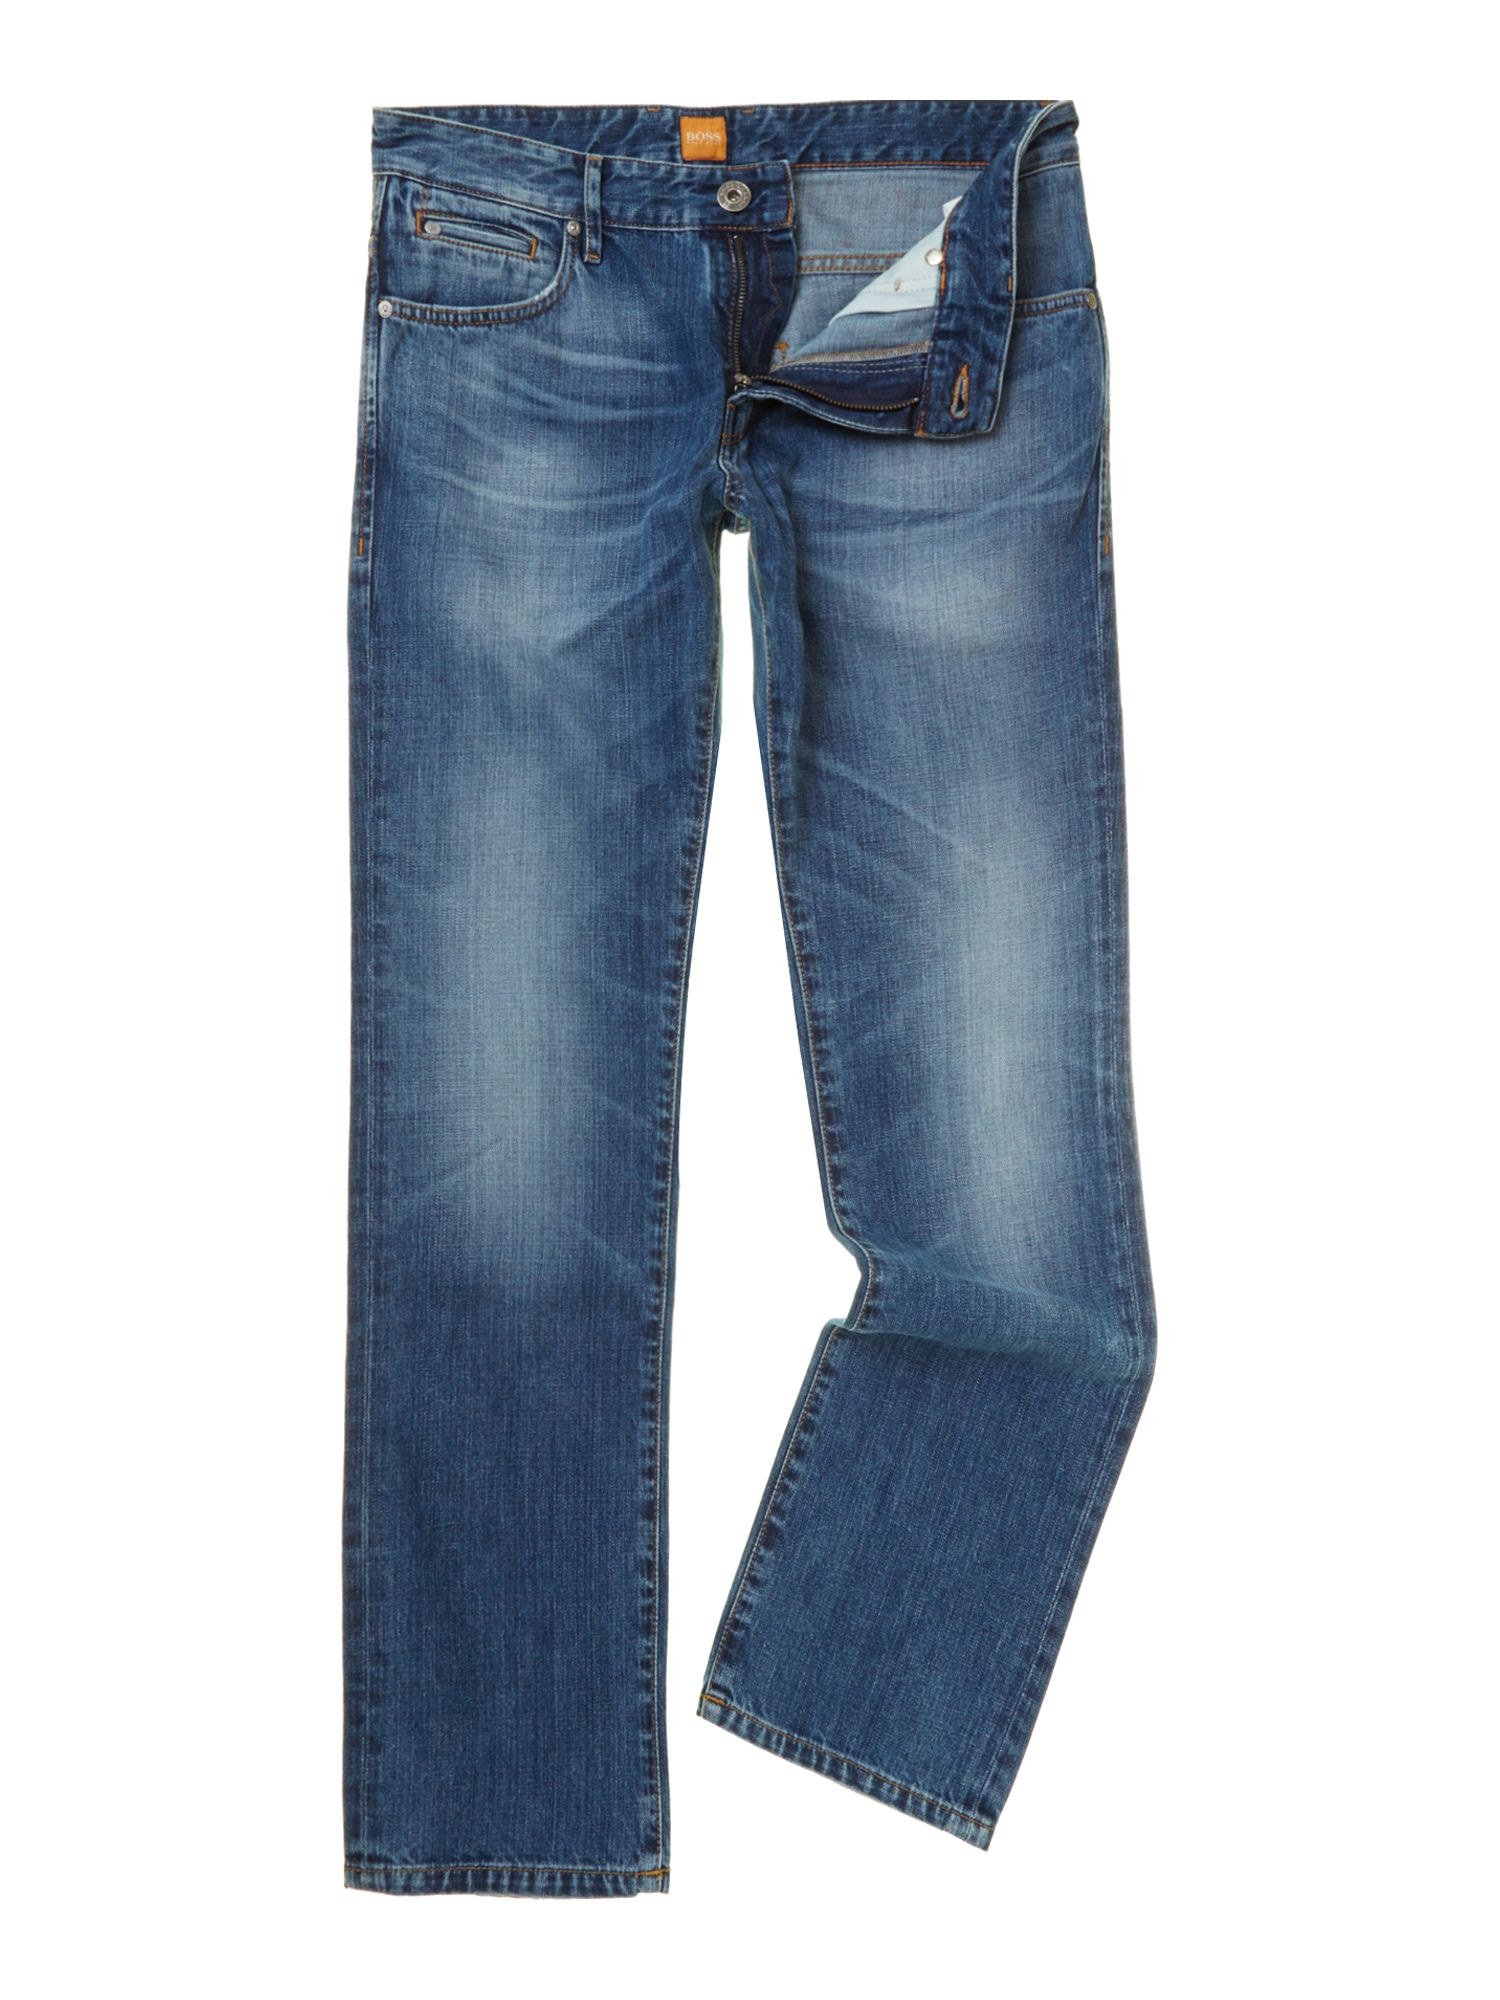 Ora 24 blue wash regular fit jean